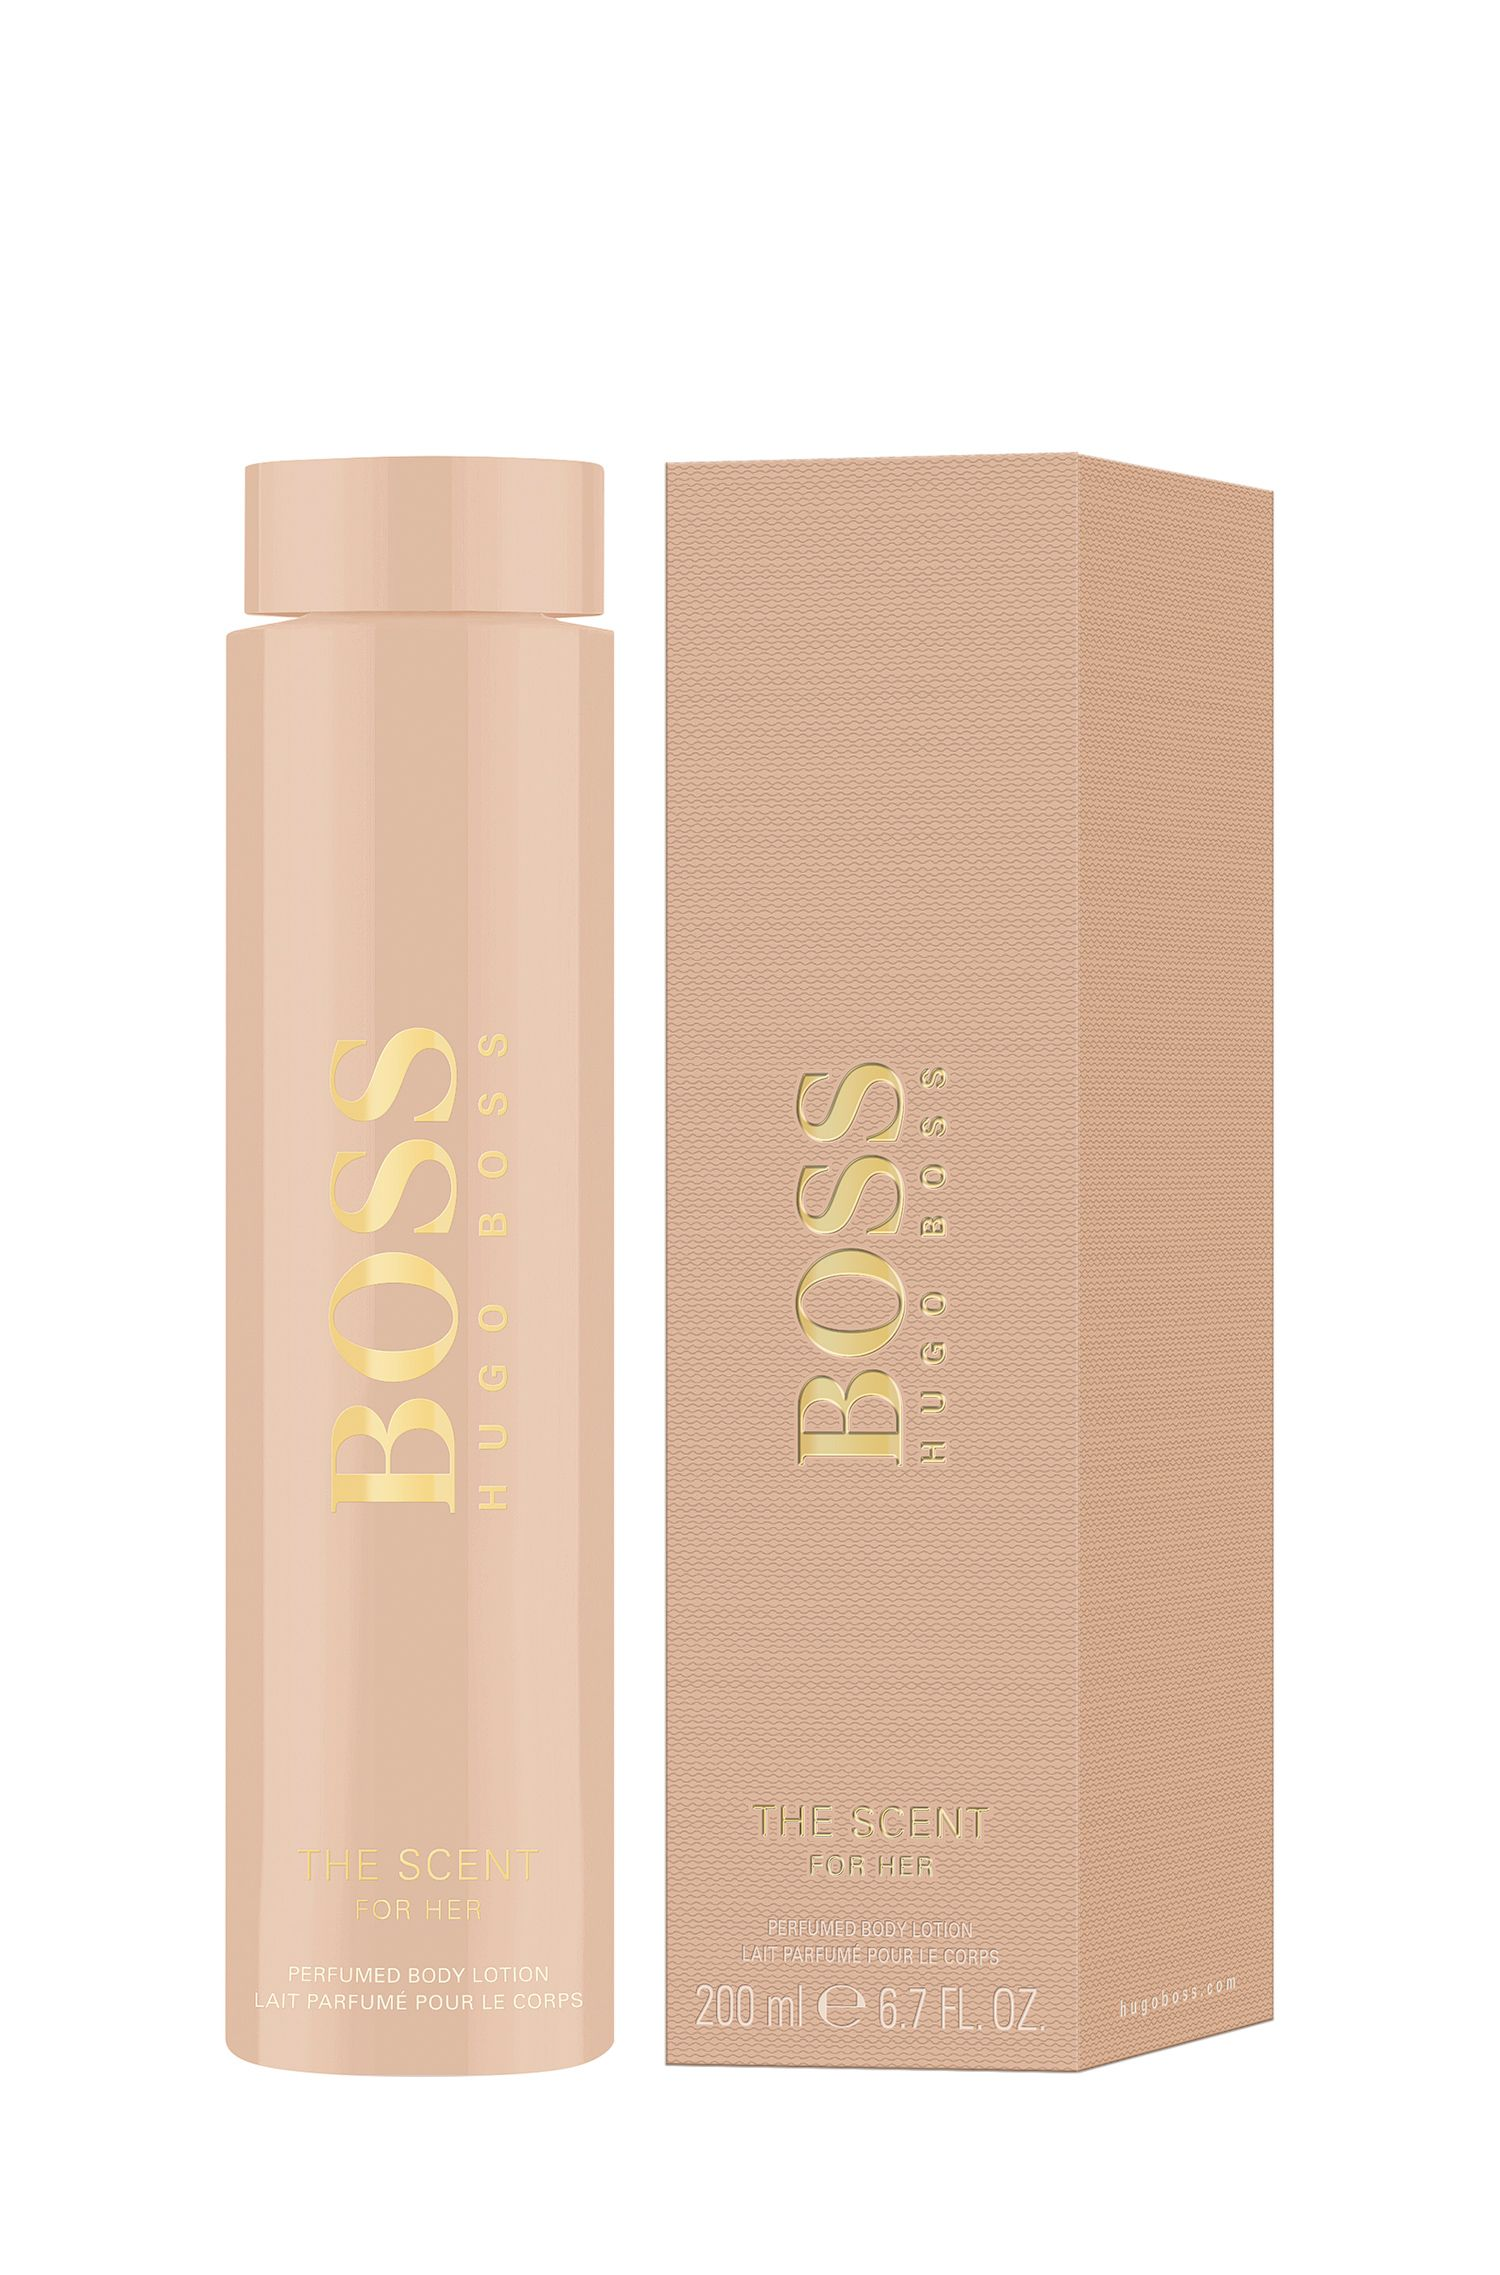 BOSS The Scent for Her body lotion 200ml